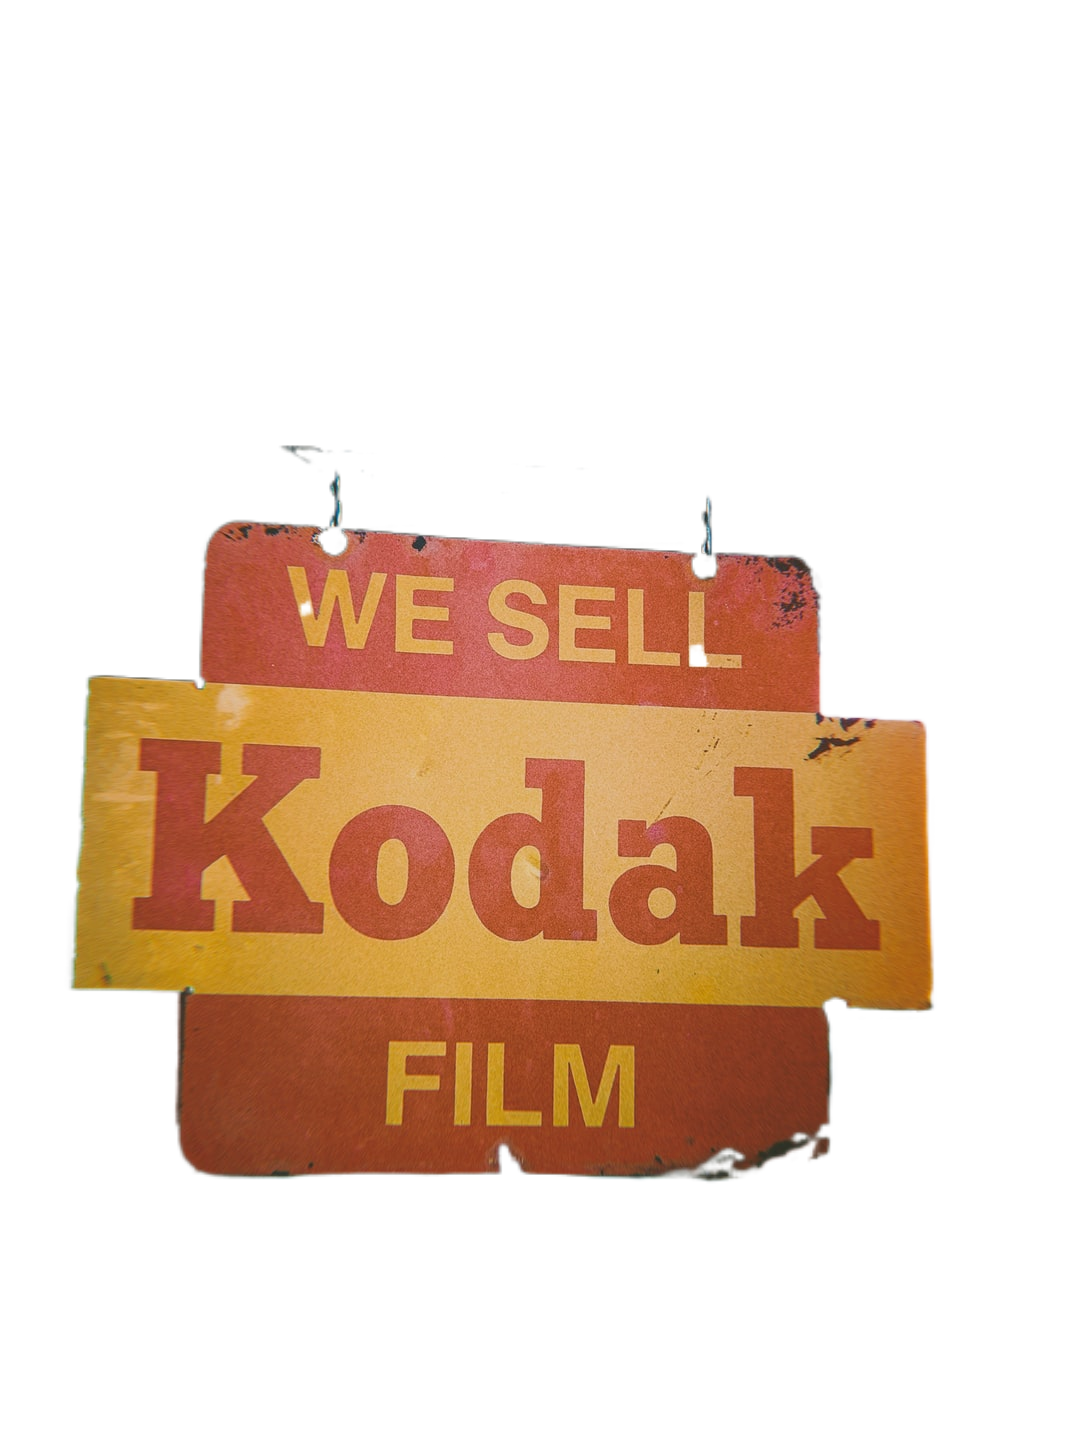 selective focus photography of we sell kodak film signage